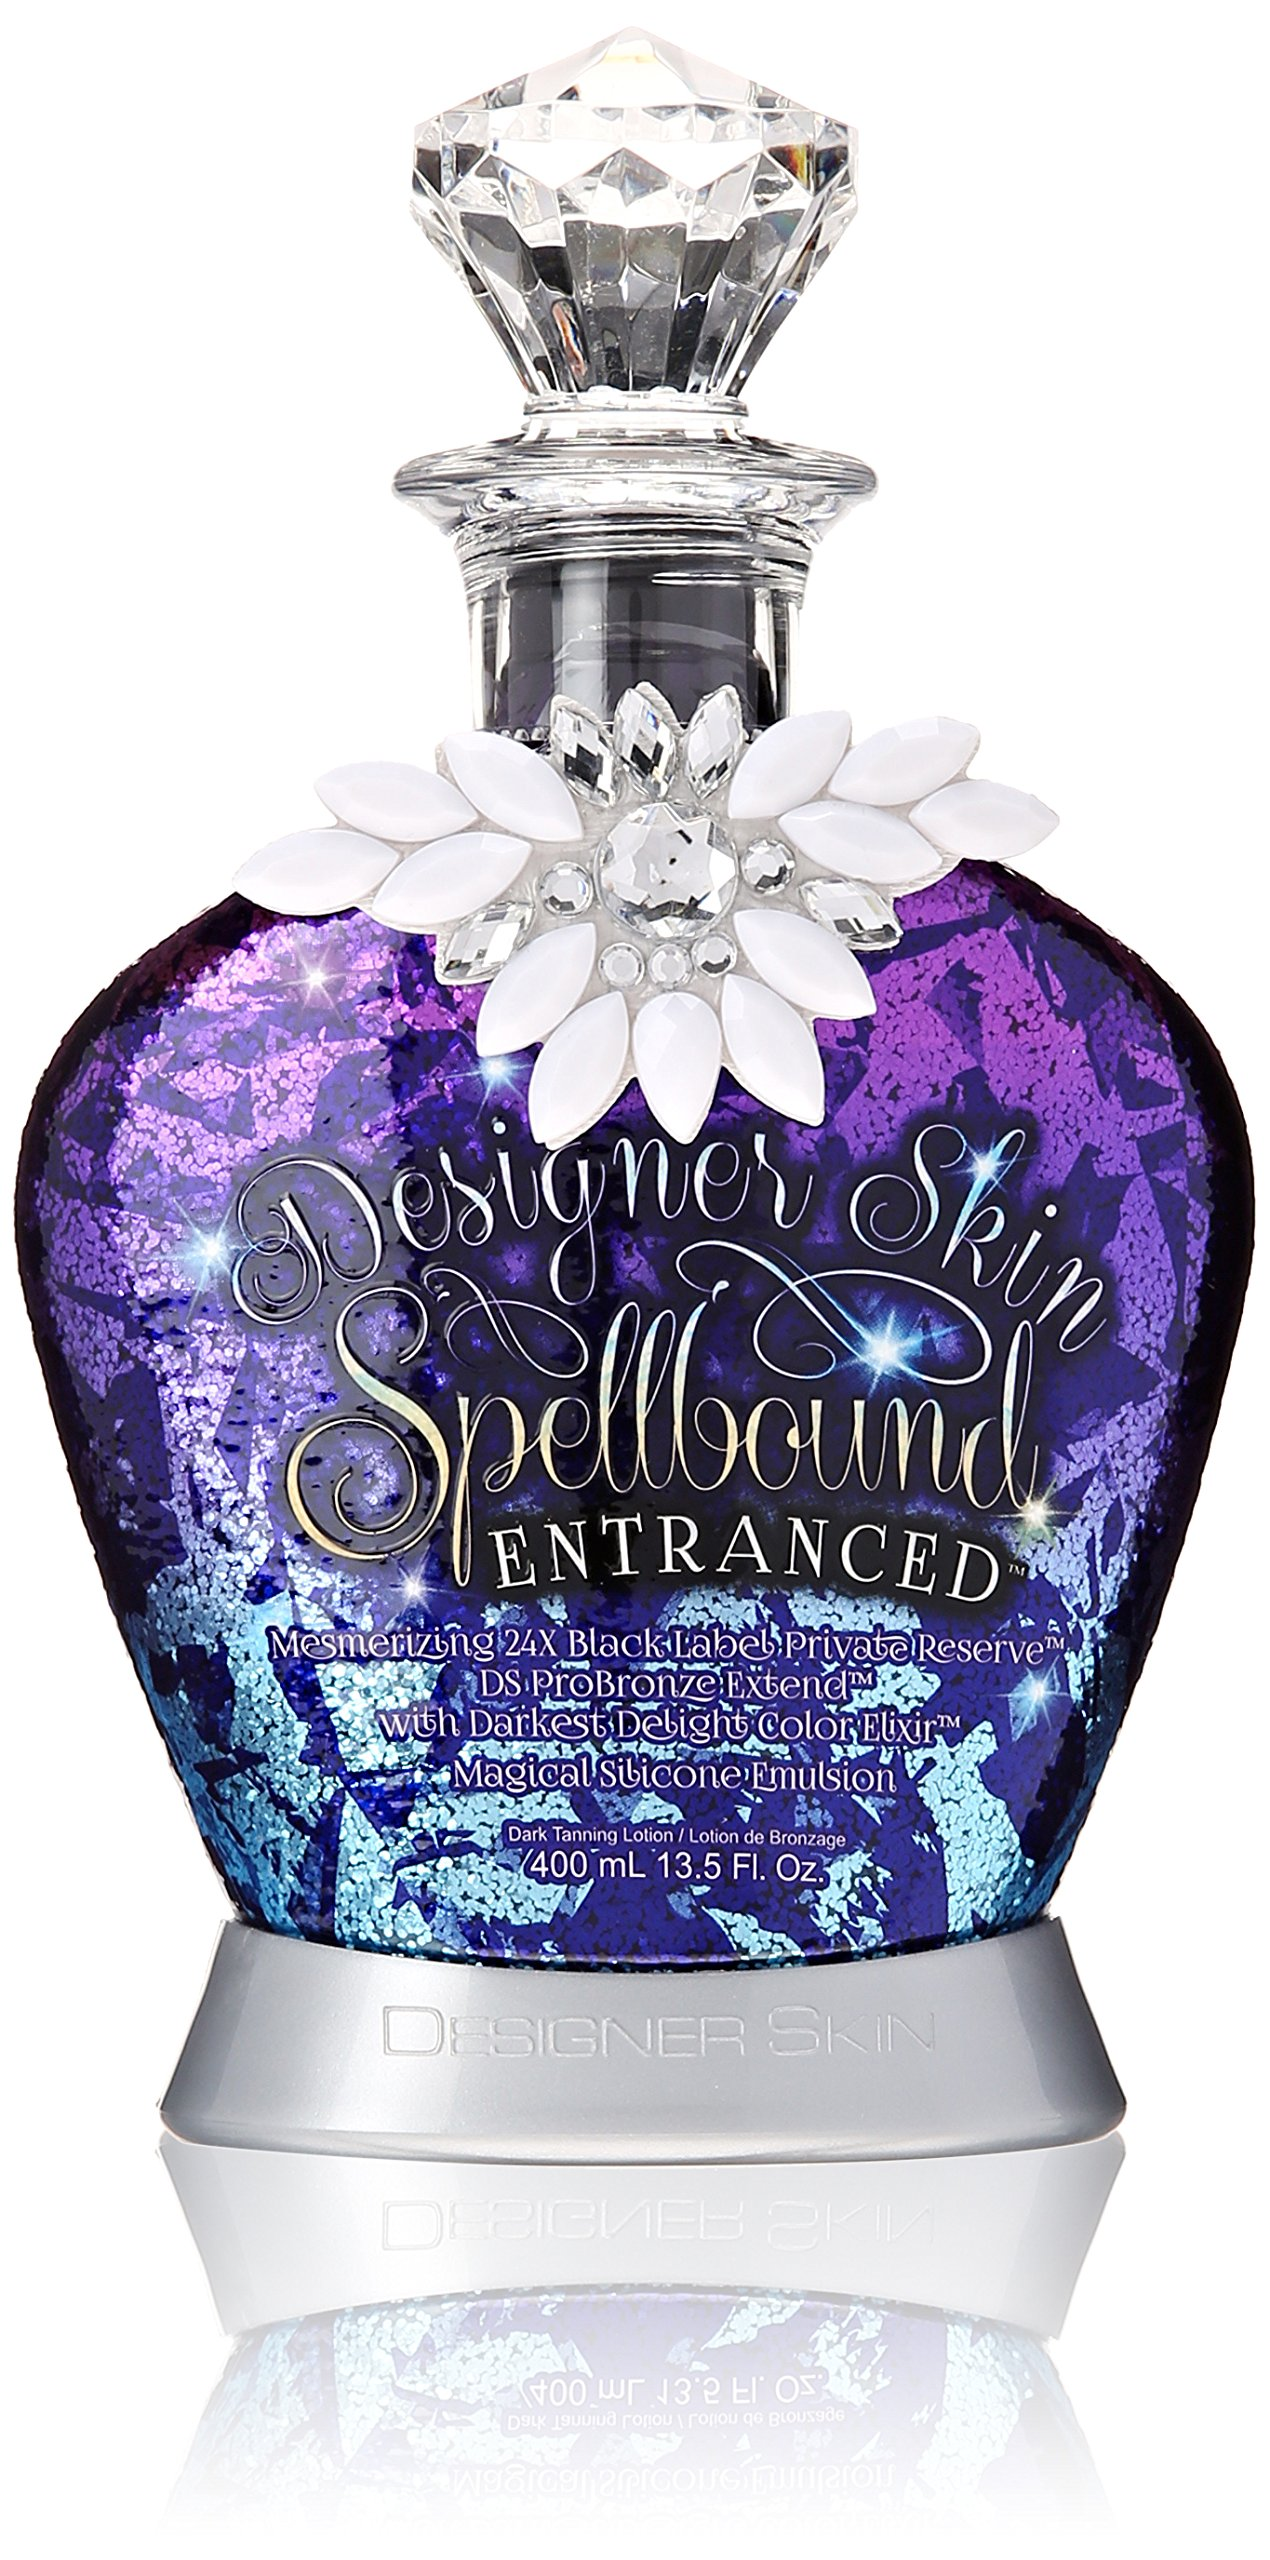 New Sunshine Designer Skin Spellbound Entranced, 13.5 Ounce